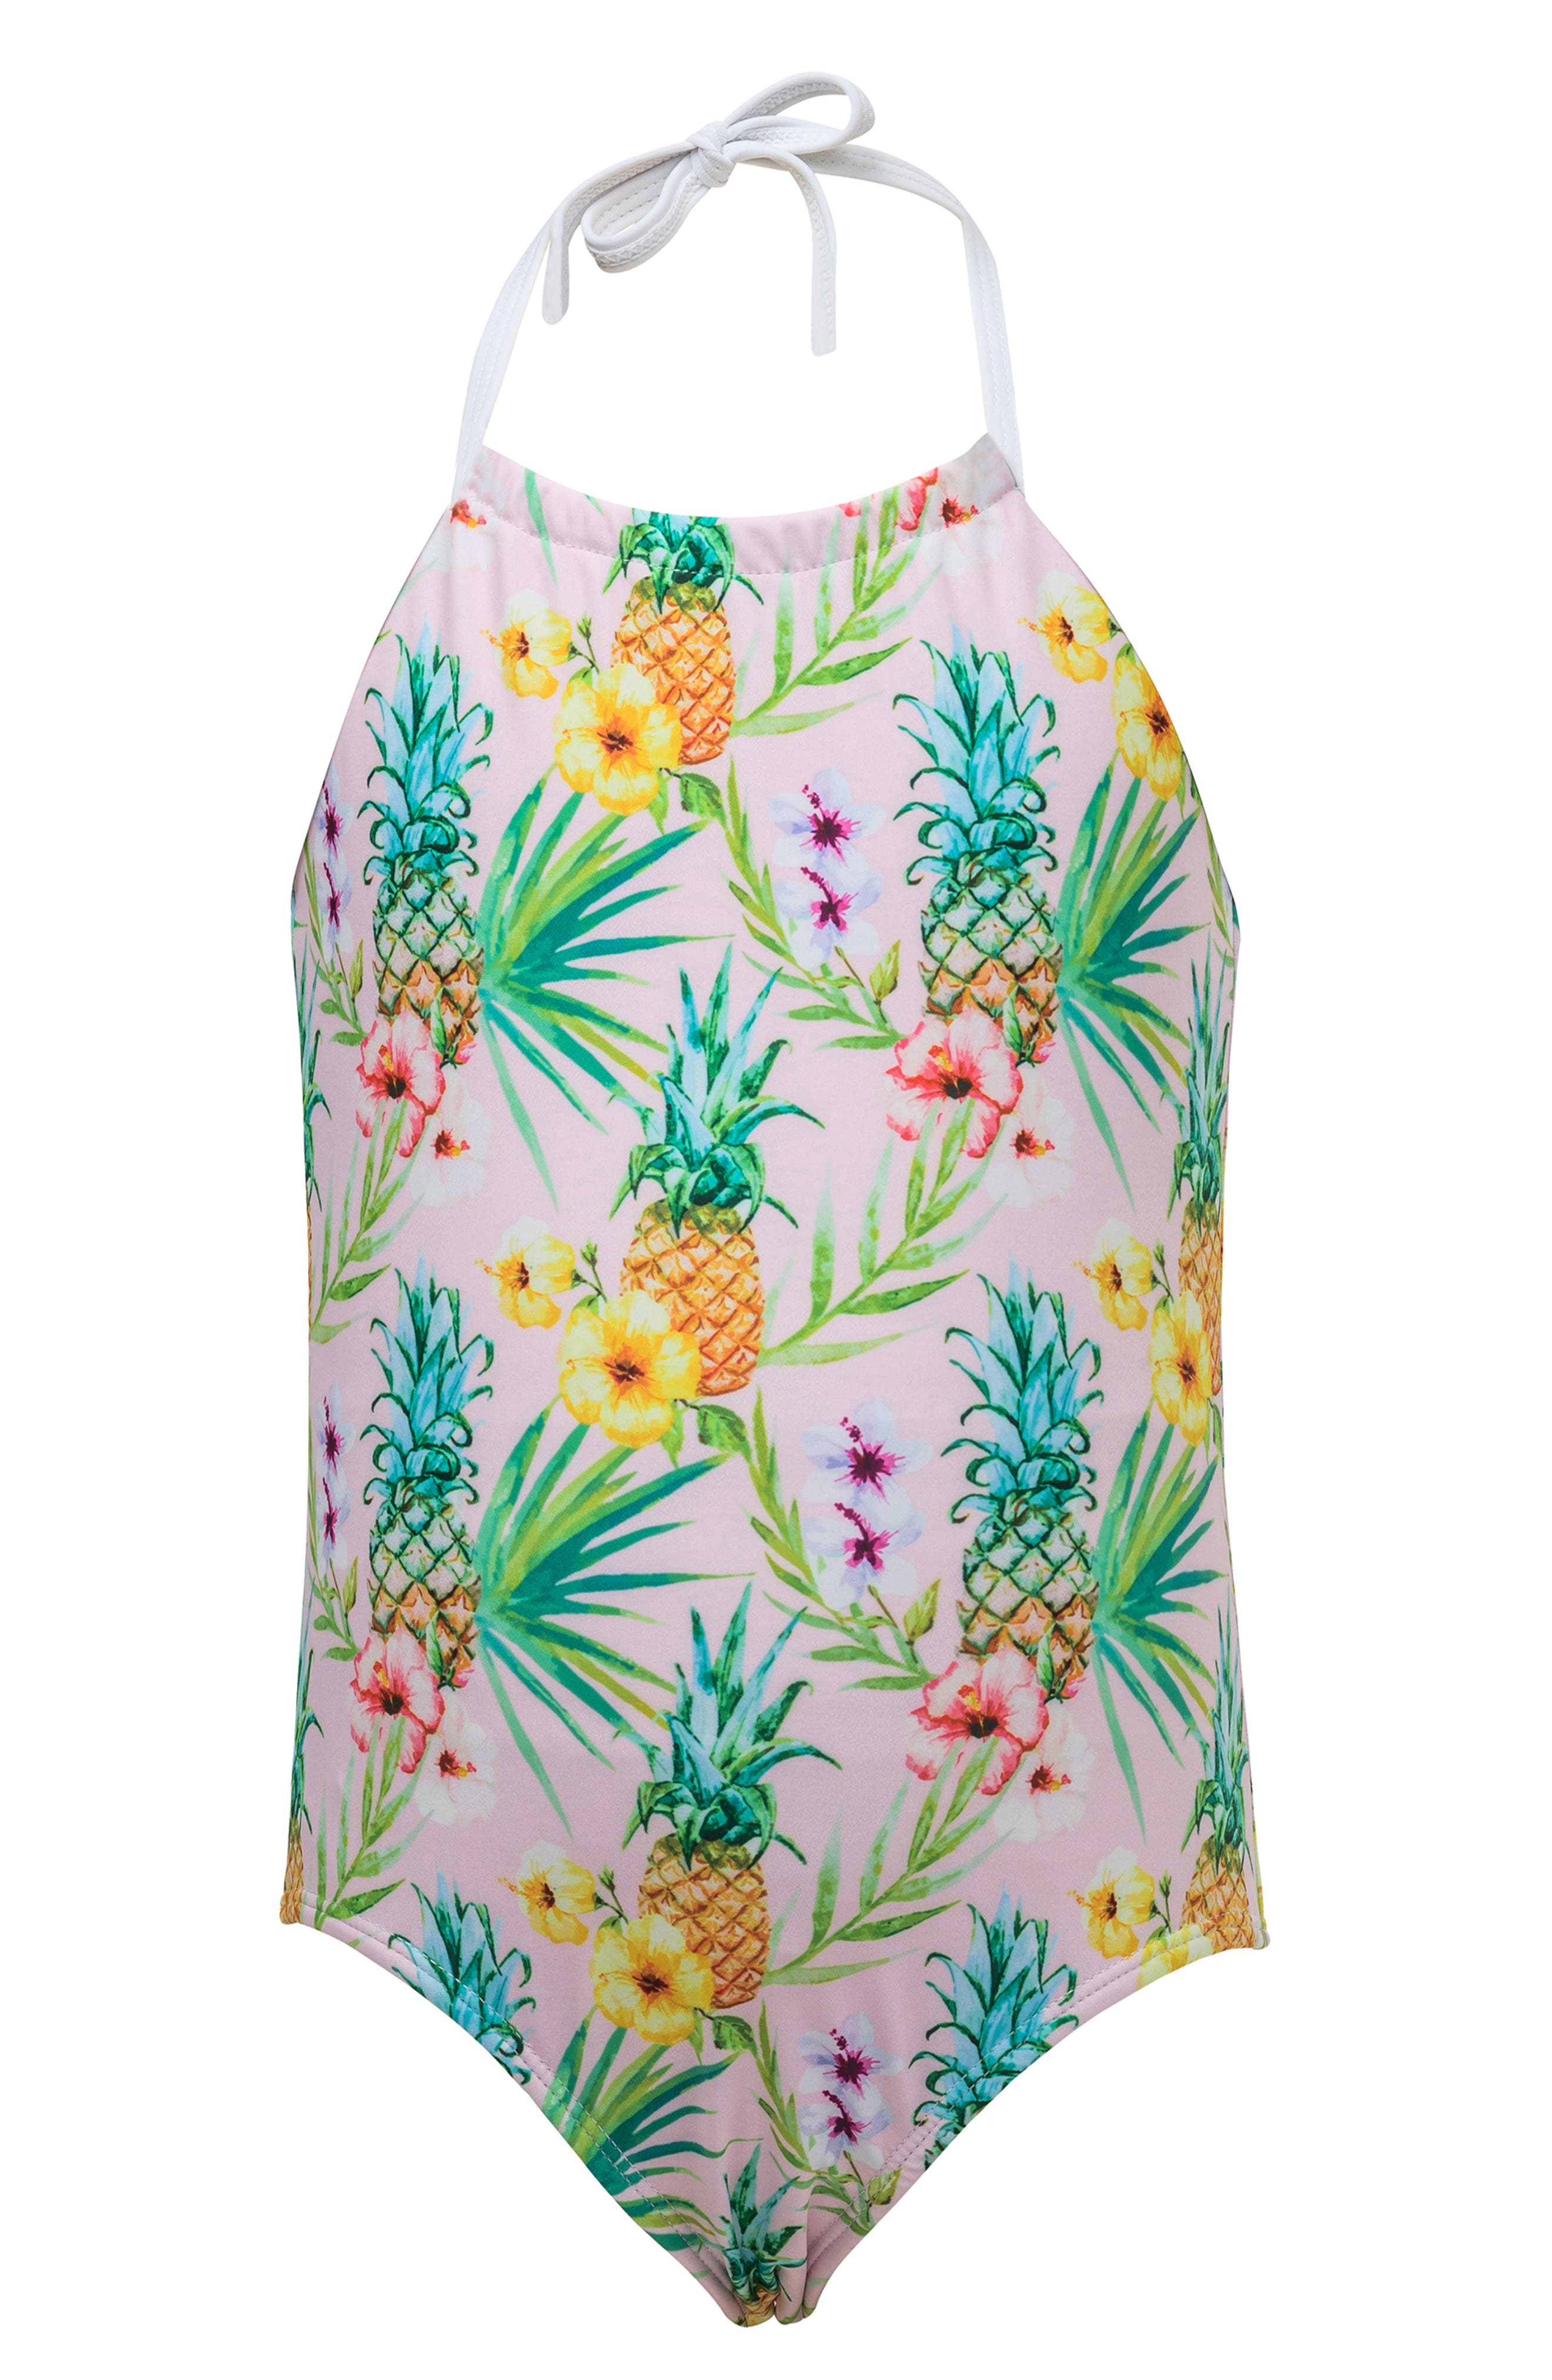 Pineapple One-Piece Halter Swimsuit,                             Main thumbnail 1, color,                             PASTEL PINK MULTI